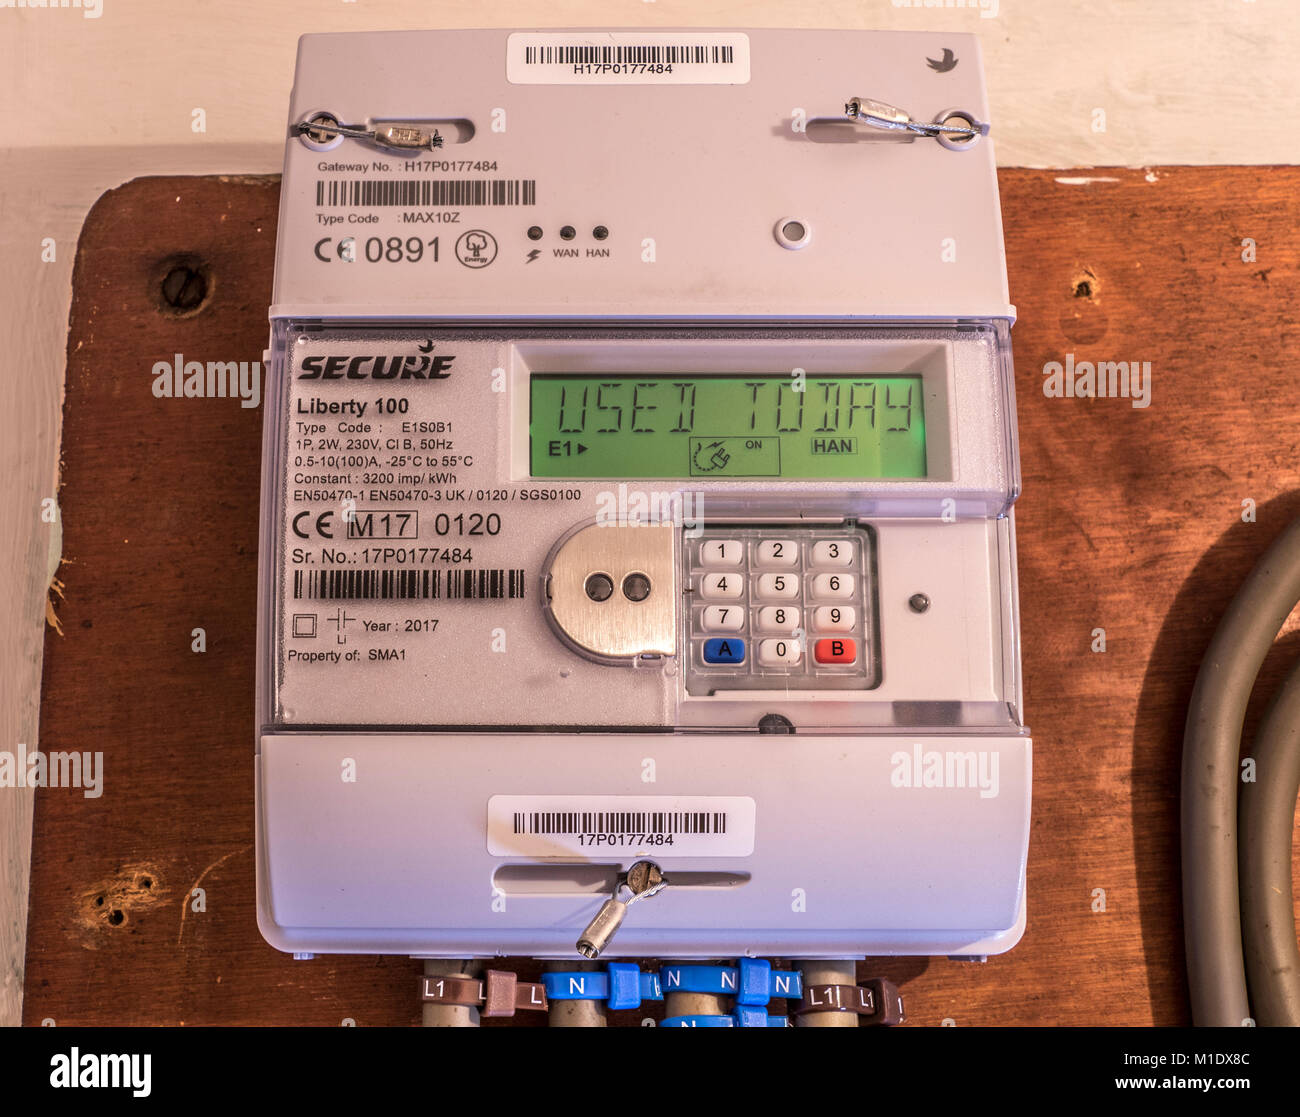 Secure Liberty 100 smart electricity meter, measuring consumption and relaying 'Used Today' information - Stock Image